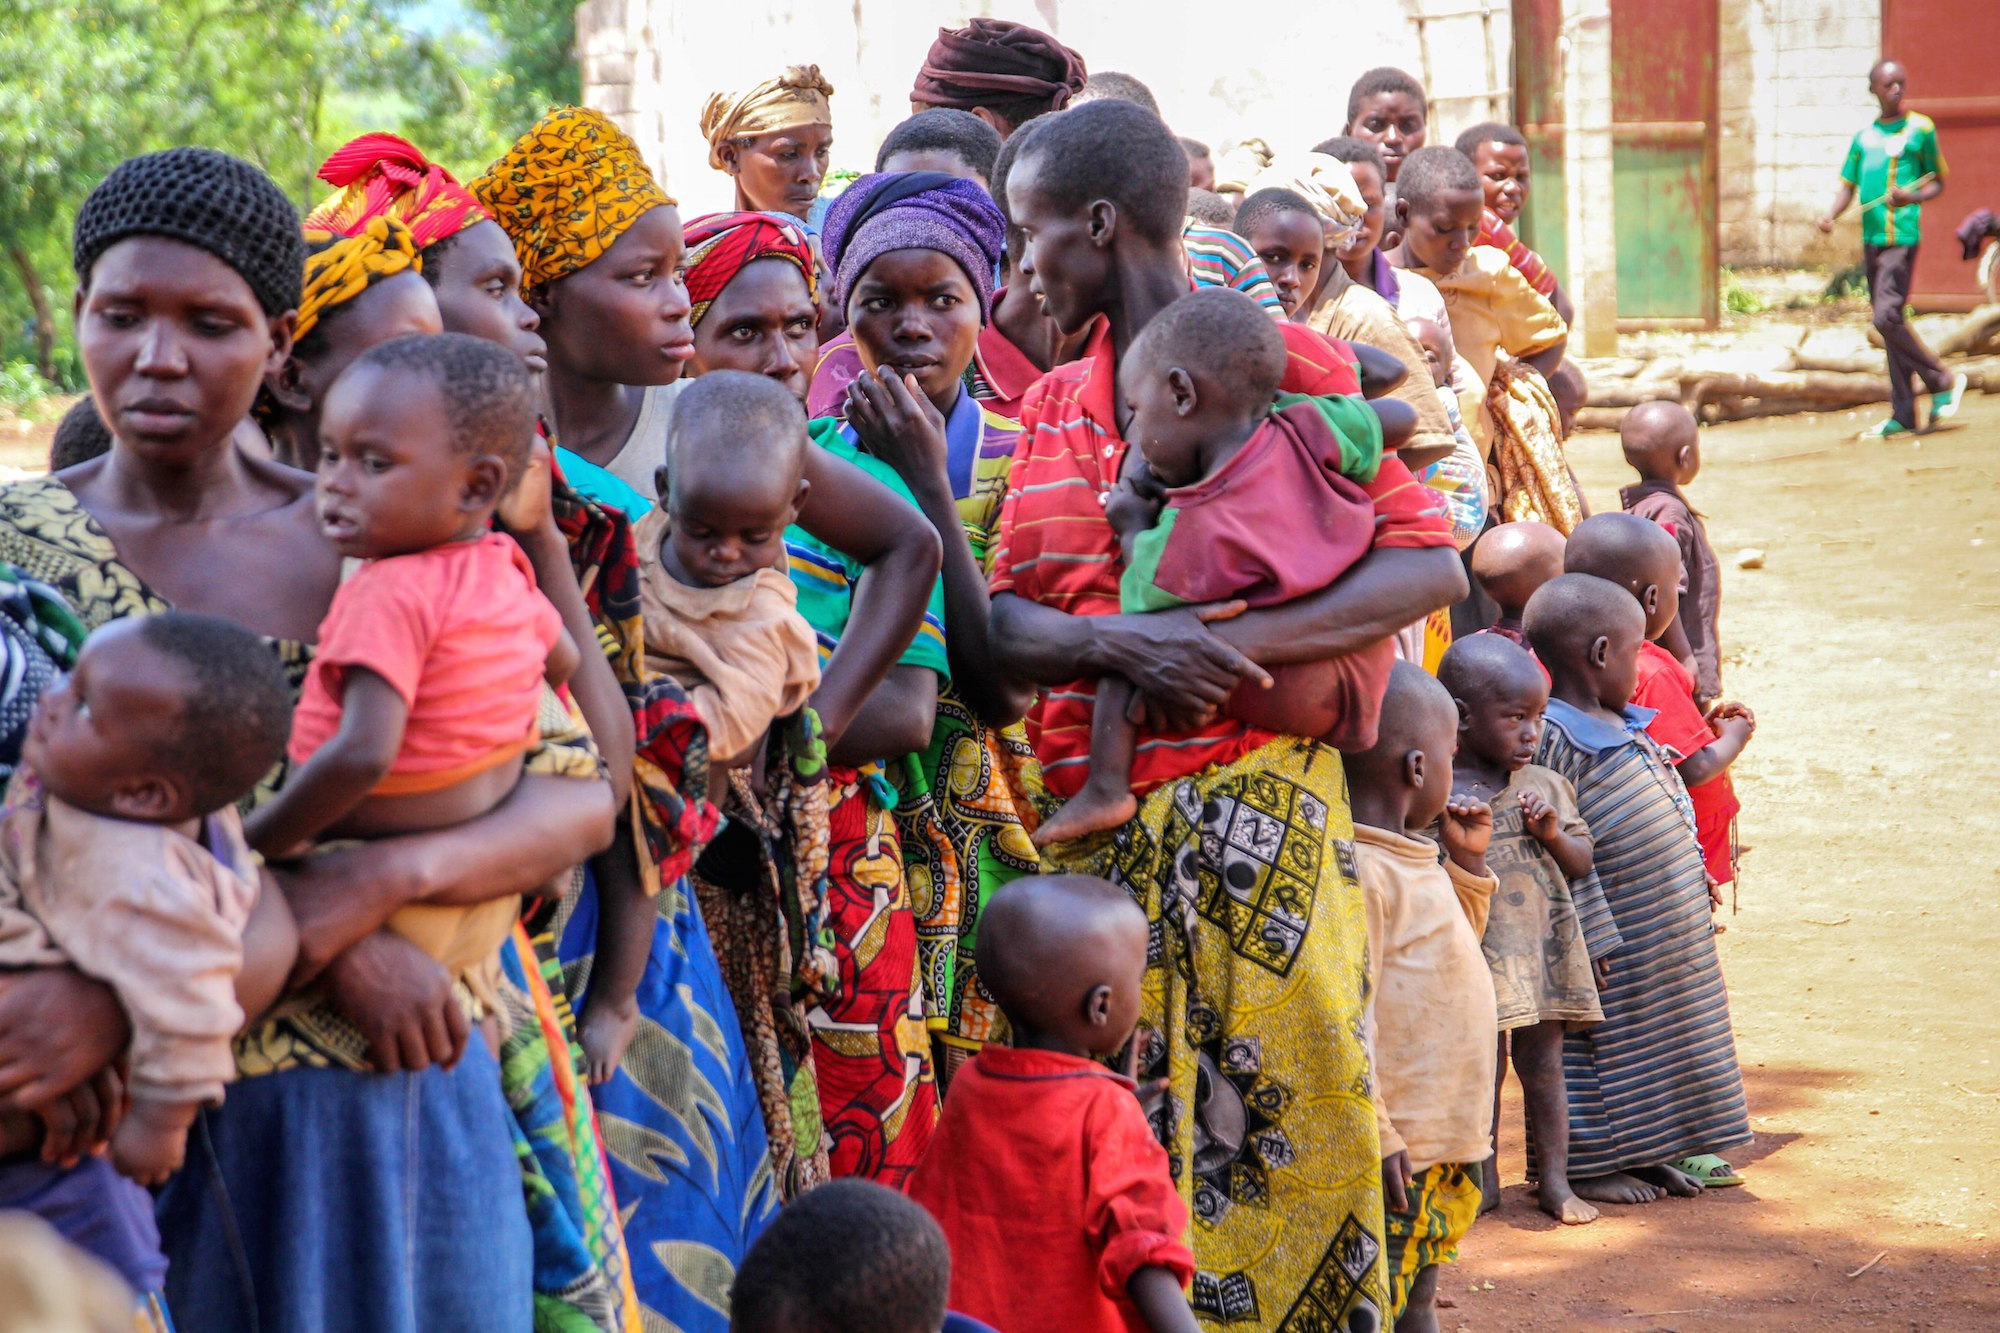 Mothers line up to register their children at a centre for Burundian refugees at Bugesera, Rwanda in April 2015